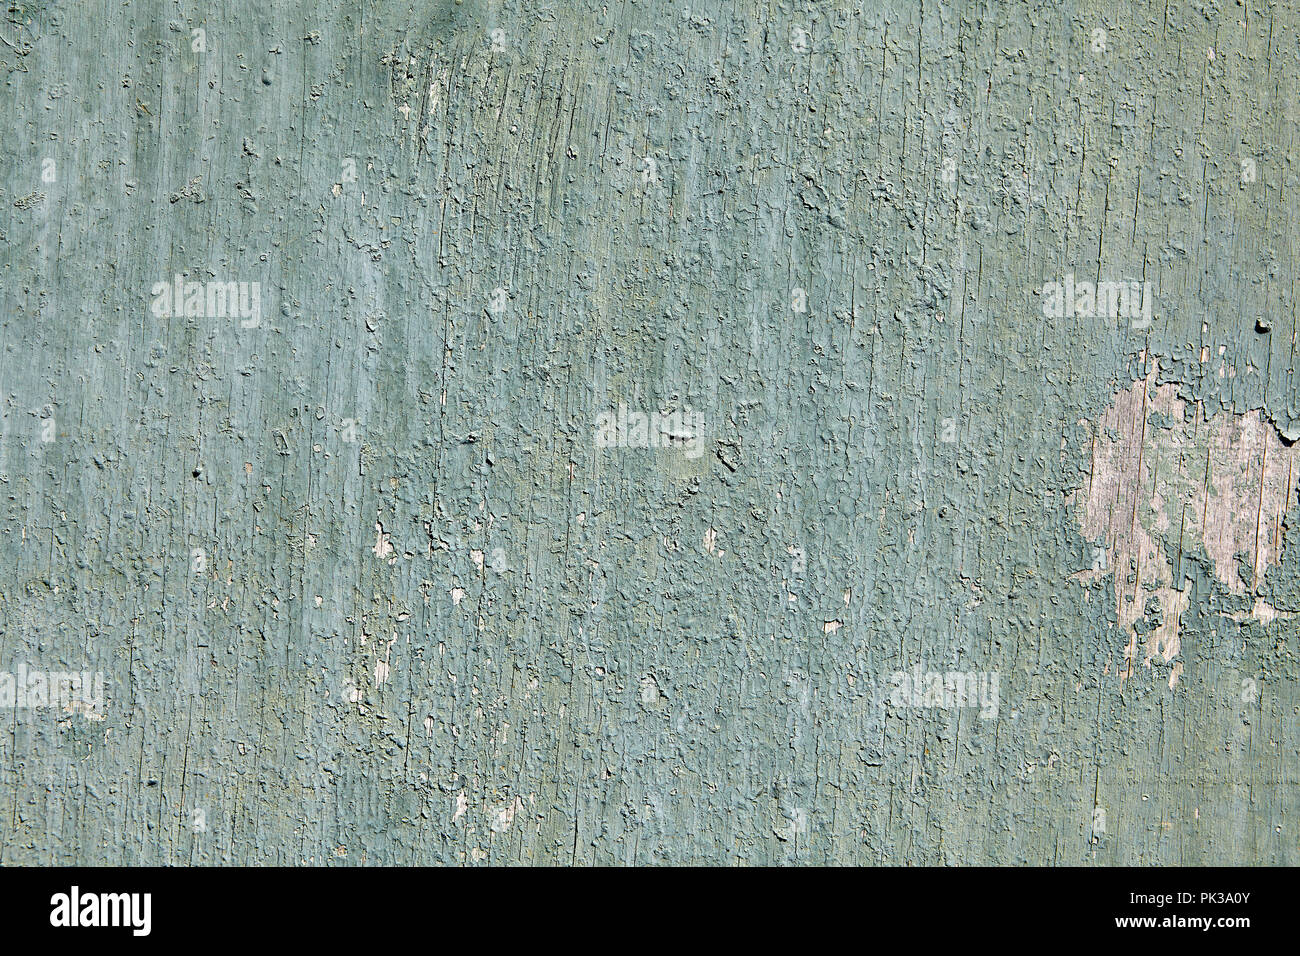 Closeup Peeling Pale Green Paint On The Surface Of The Old Cracked Sheet Of Plywood Texture For The Backdrop Stock Photo Alamy